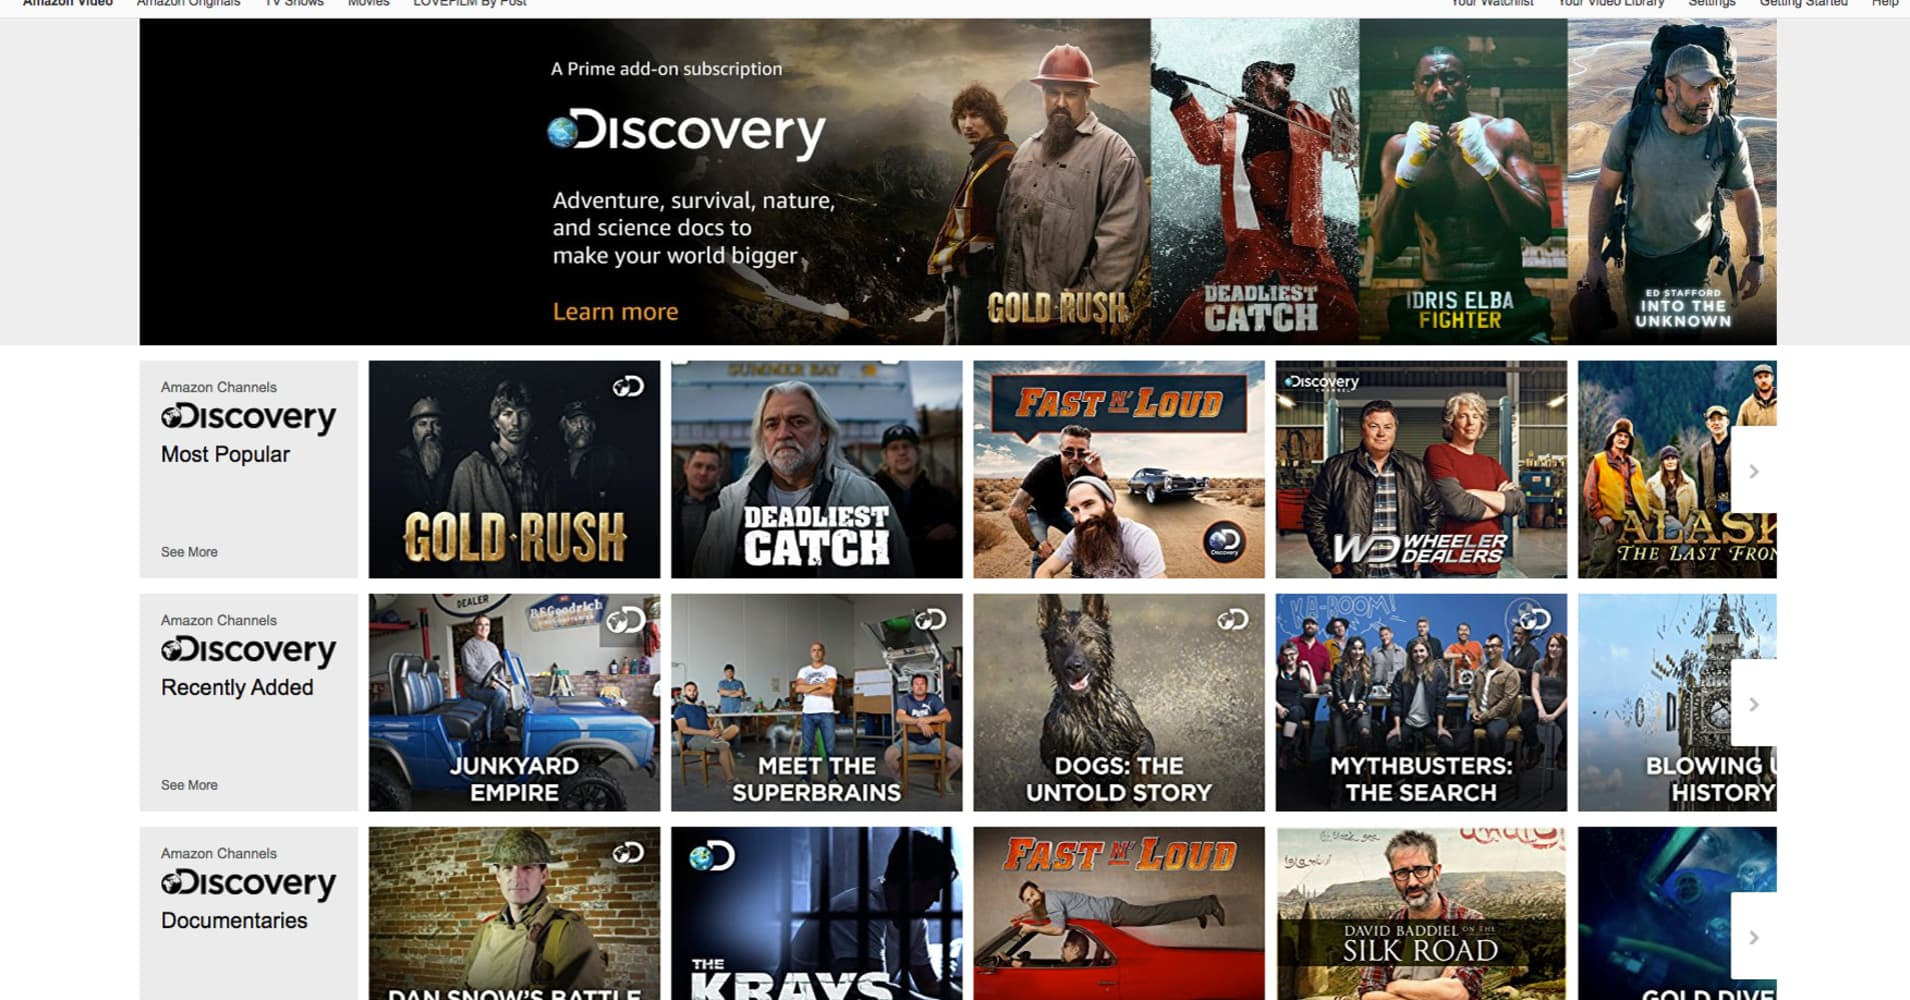 Amazon brings live broadcasting to Europe to compete with Sky, Facebook and Netflix